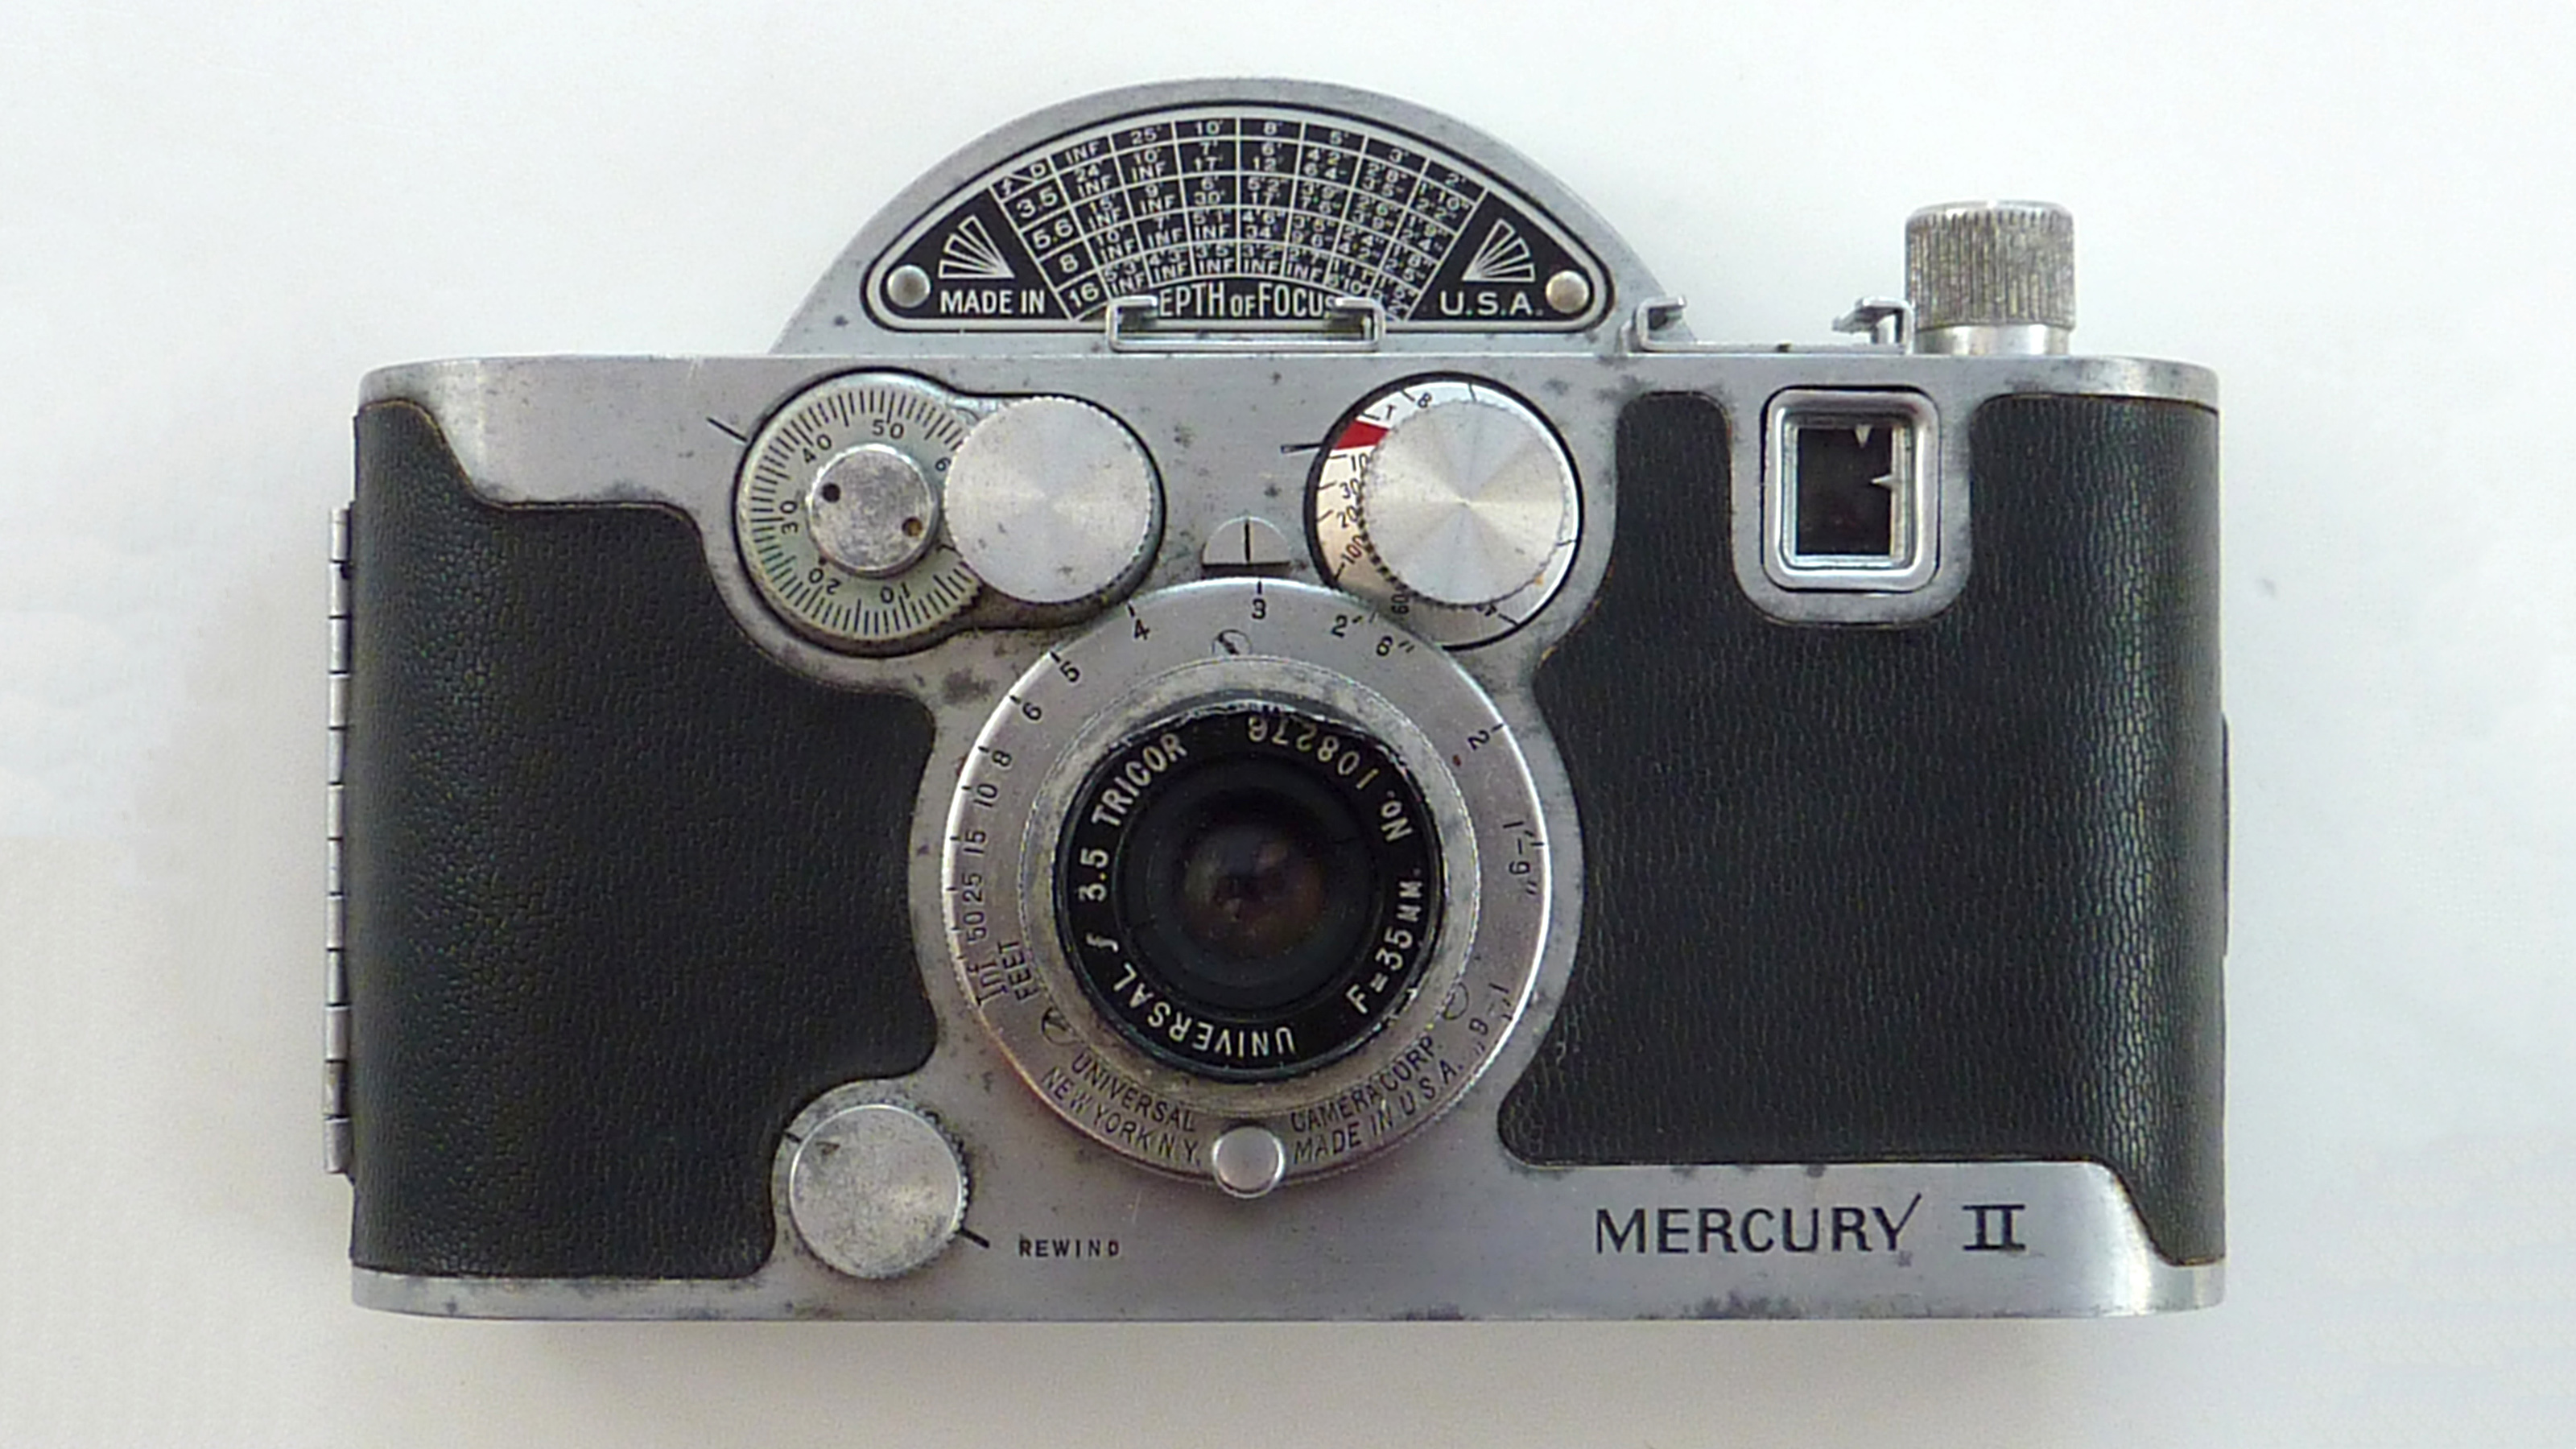 The front of the Mercury II camera